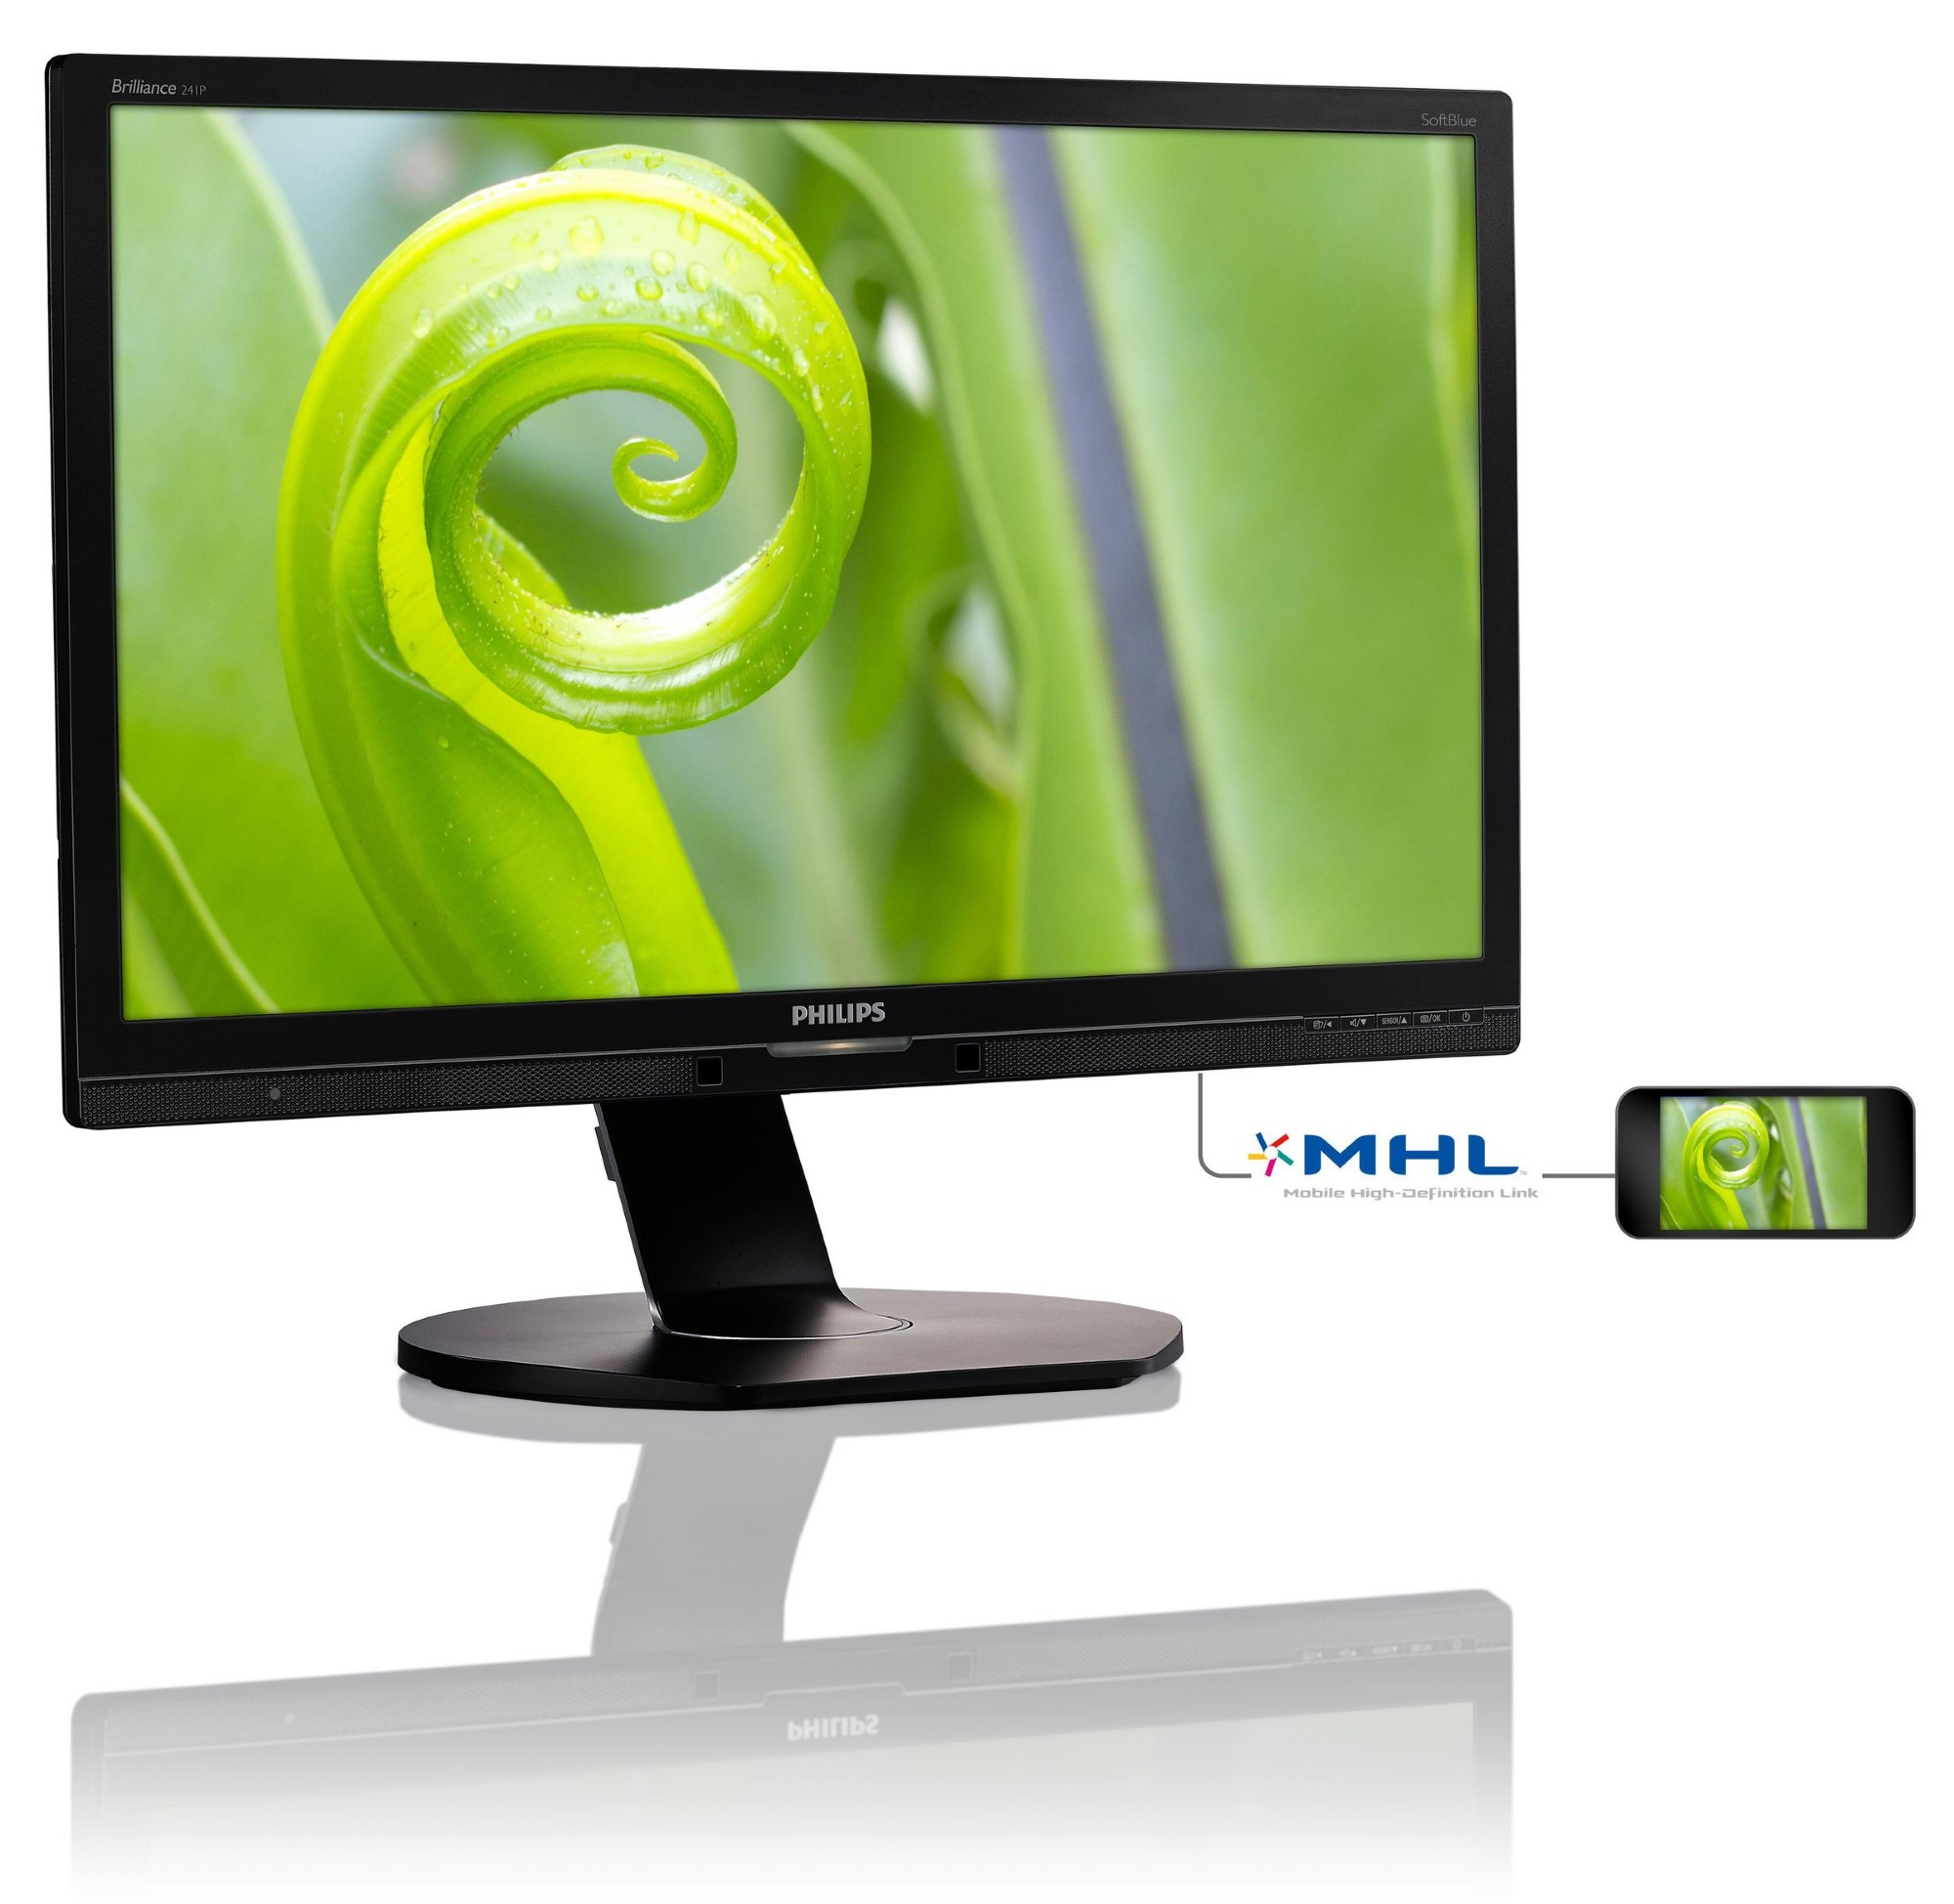 PHILIPS BRILLIANCE LCD MONITOR WITH SOFTBLUE TECHNOLOGY 241P6EPJEB/00